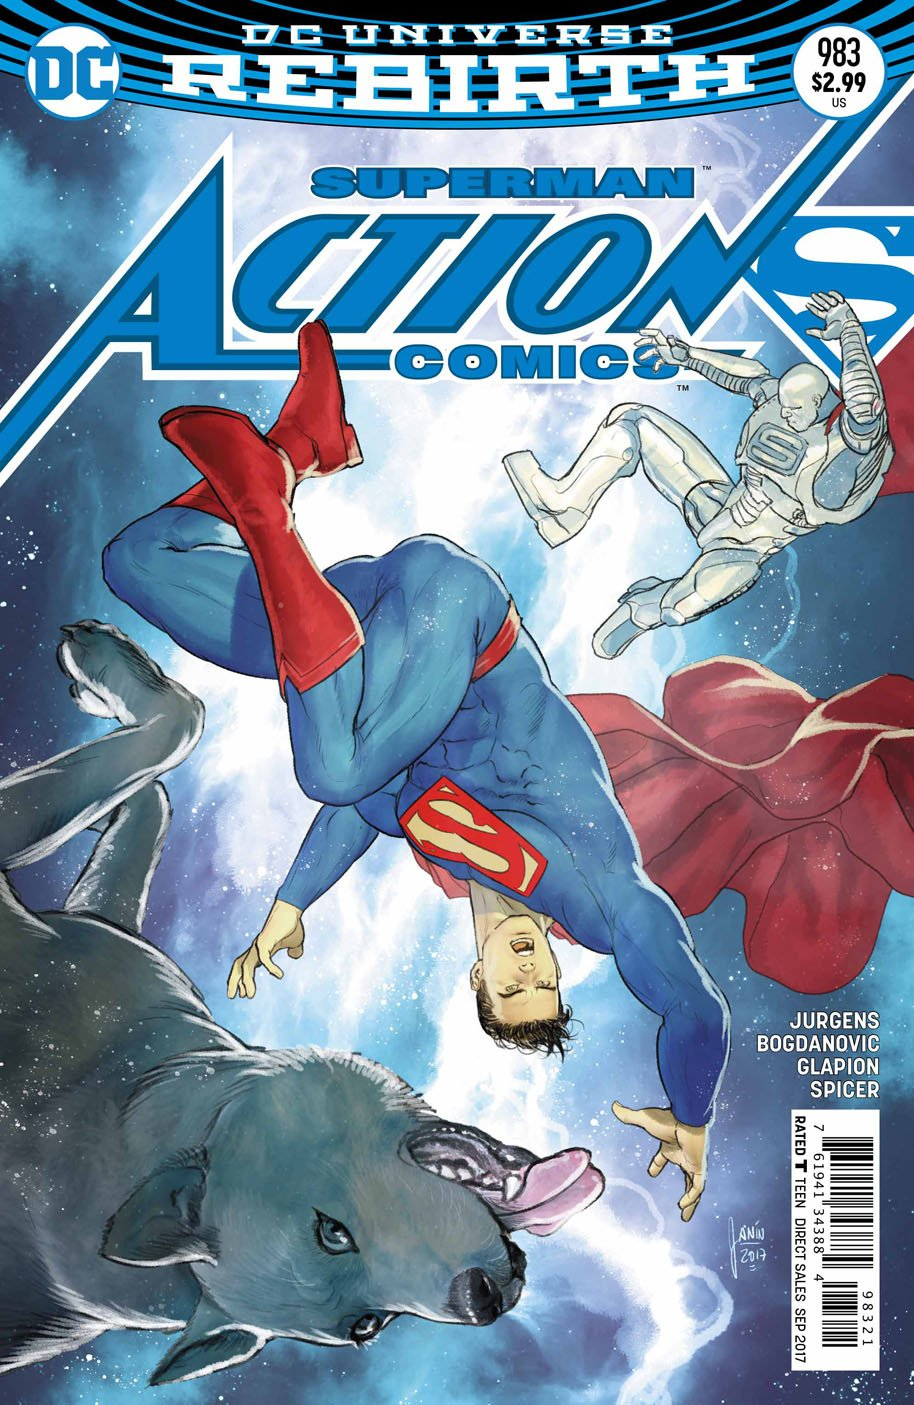 Action Comics 983 open order variant cover